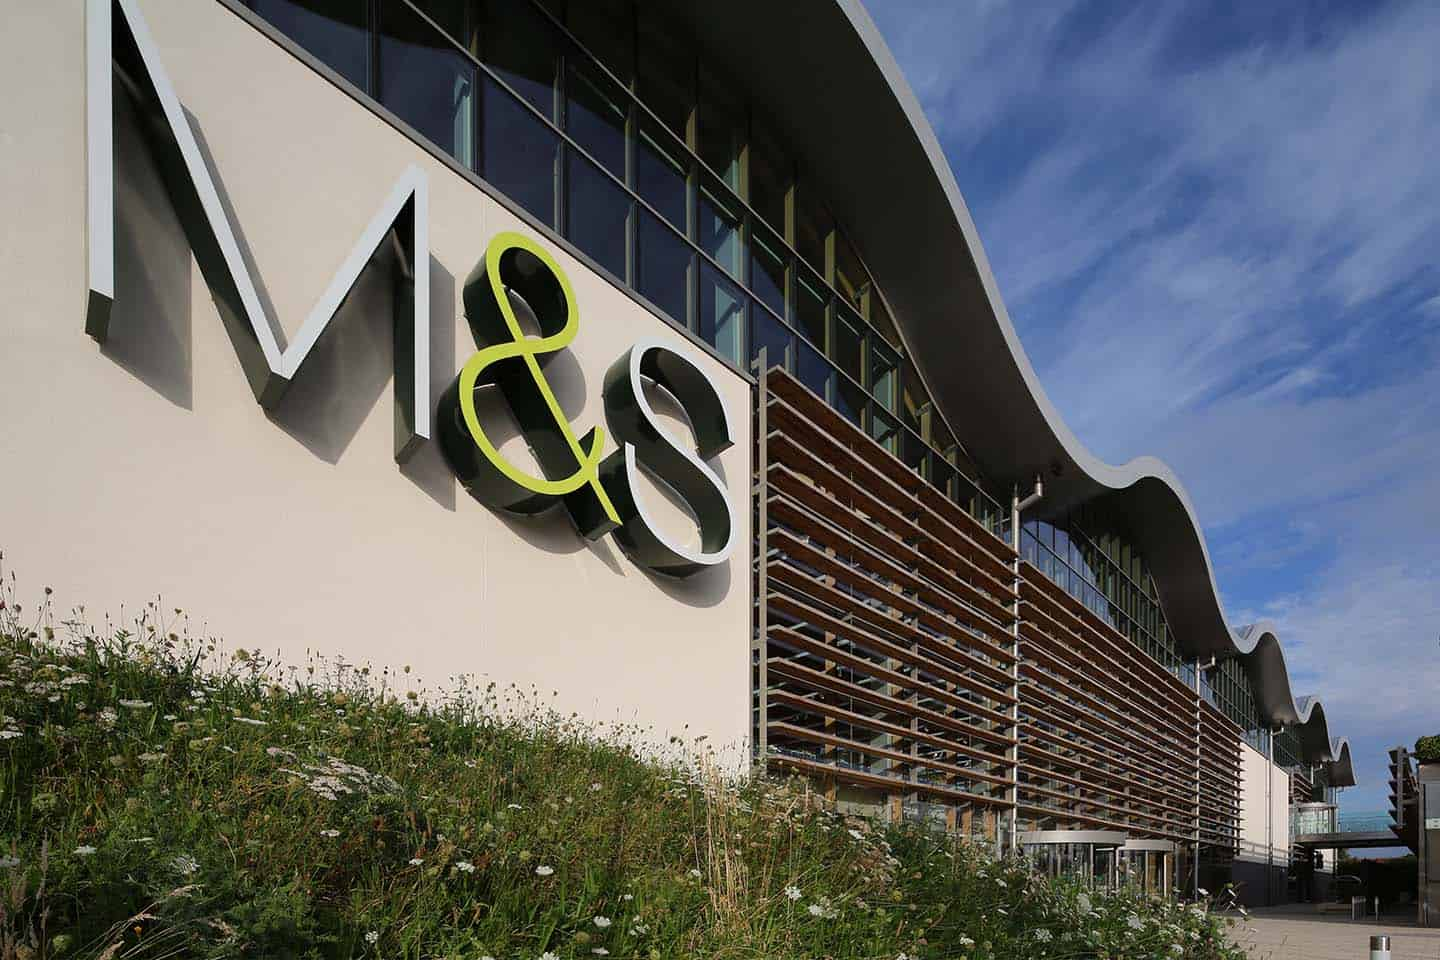 m&s commercial glazing project